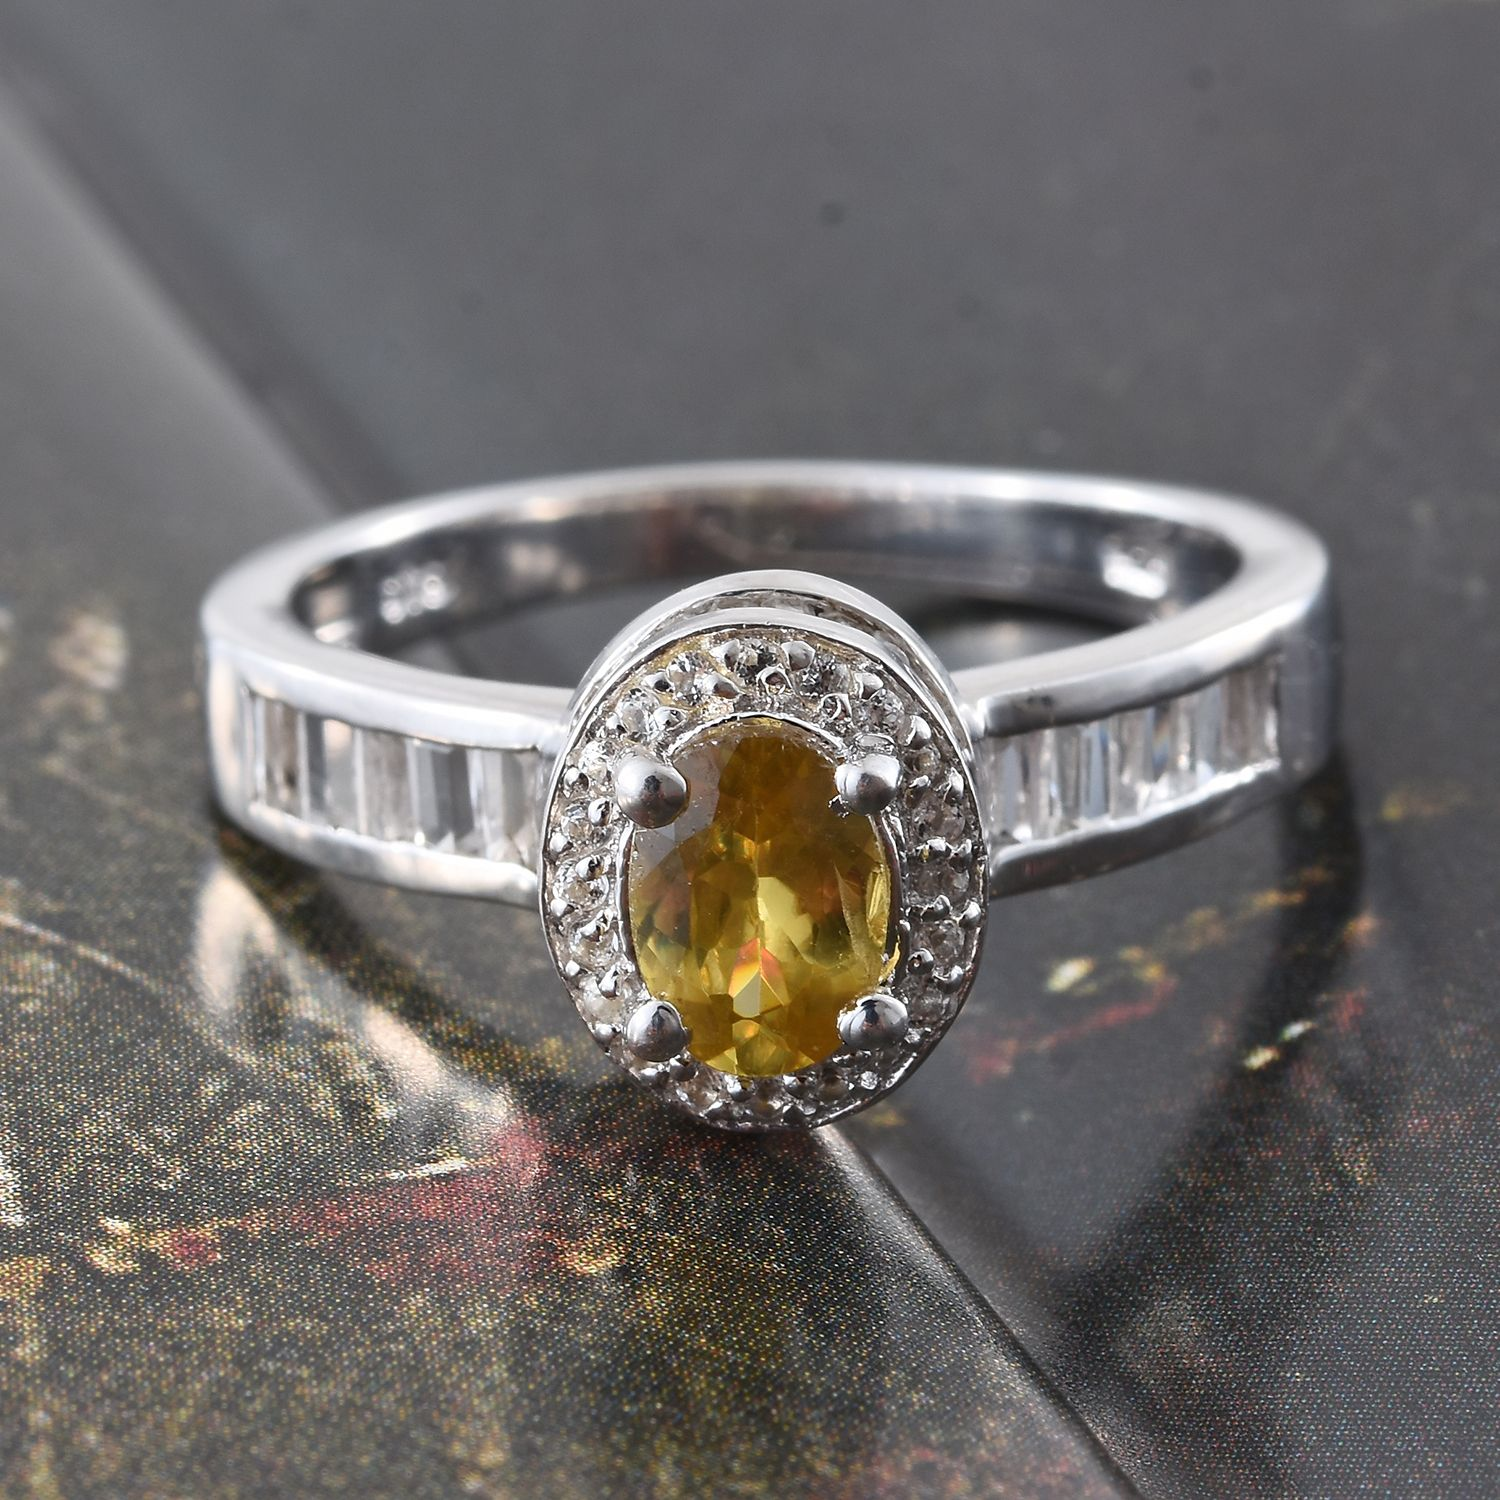 products rings garnet and sphene from tsavorite collection green elizabeth img virginia the henry in ring diamond